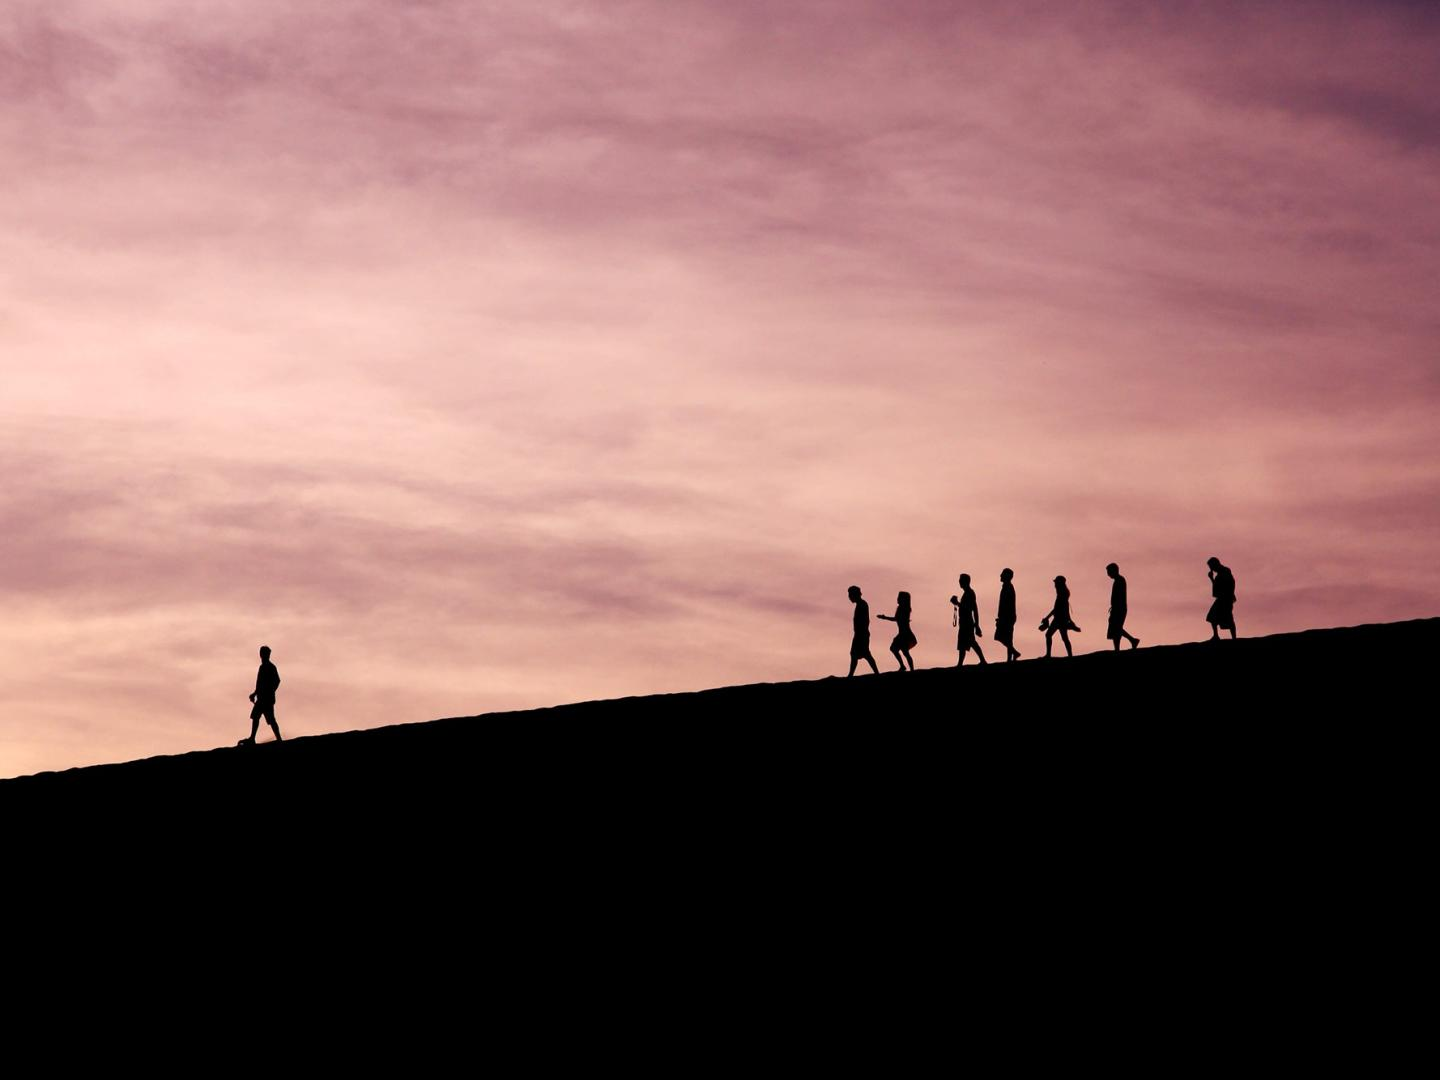 Image of people in distance walking on a hill with one person leading